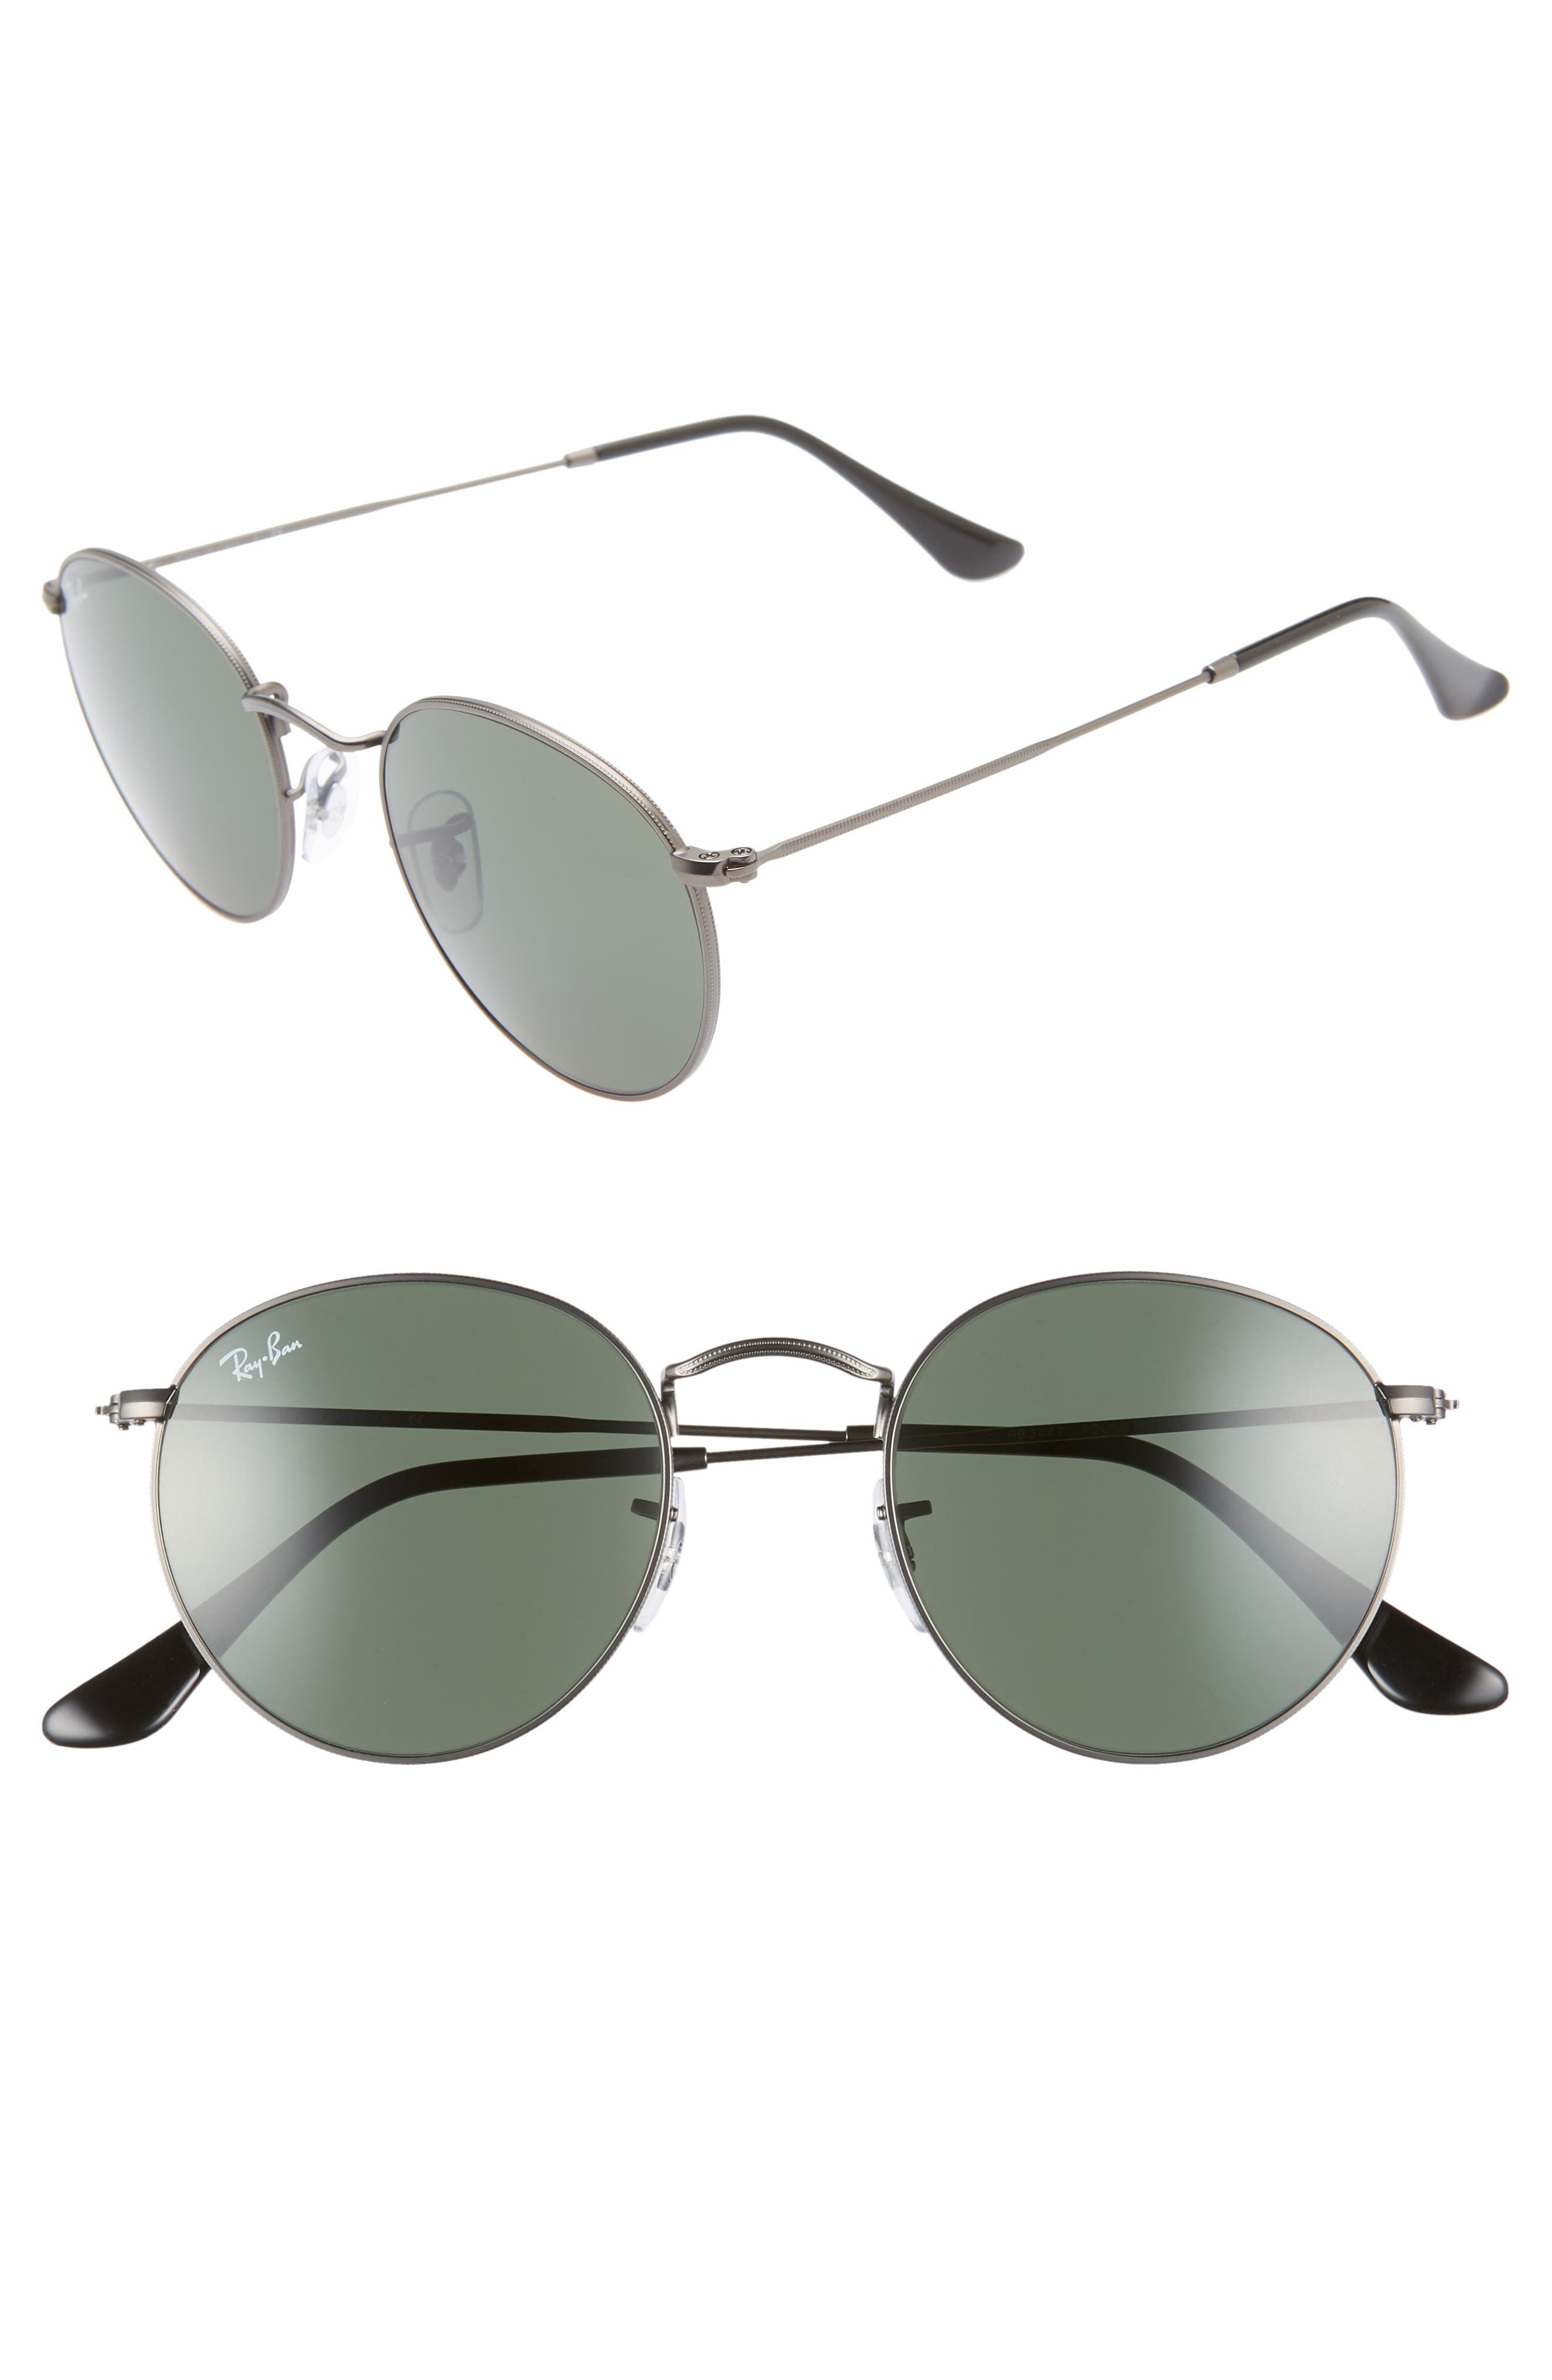 Icons 50mm Round Metal Sunglasses,                         Main,                         color, GUNMETAL/ GREEN SOLID